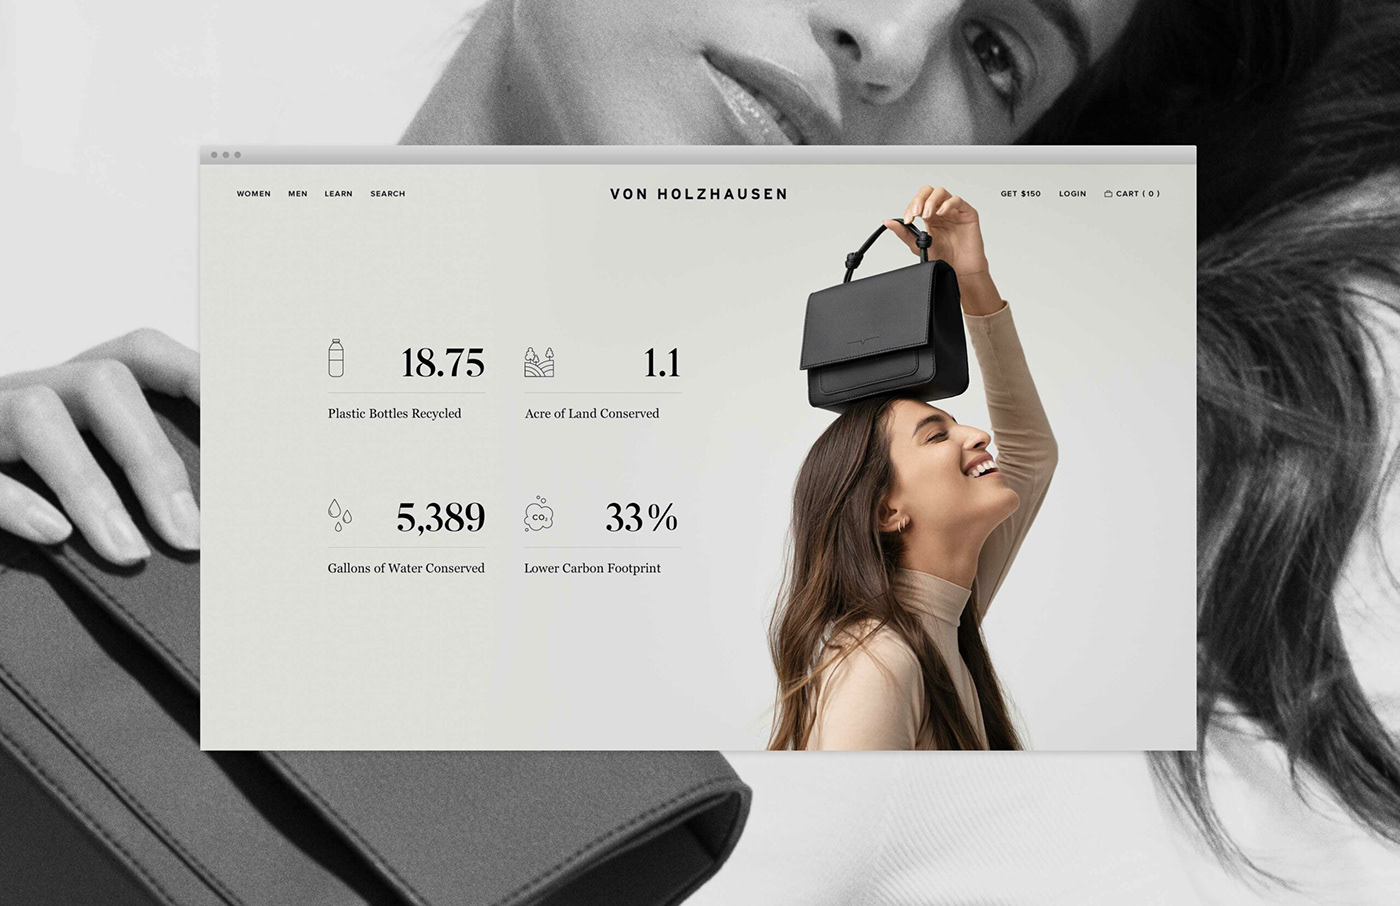 accessories campaign Campaign Strategy Fashion  luxury Product campaign product launch Sustainability Website